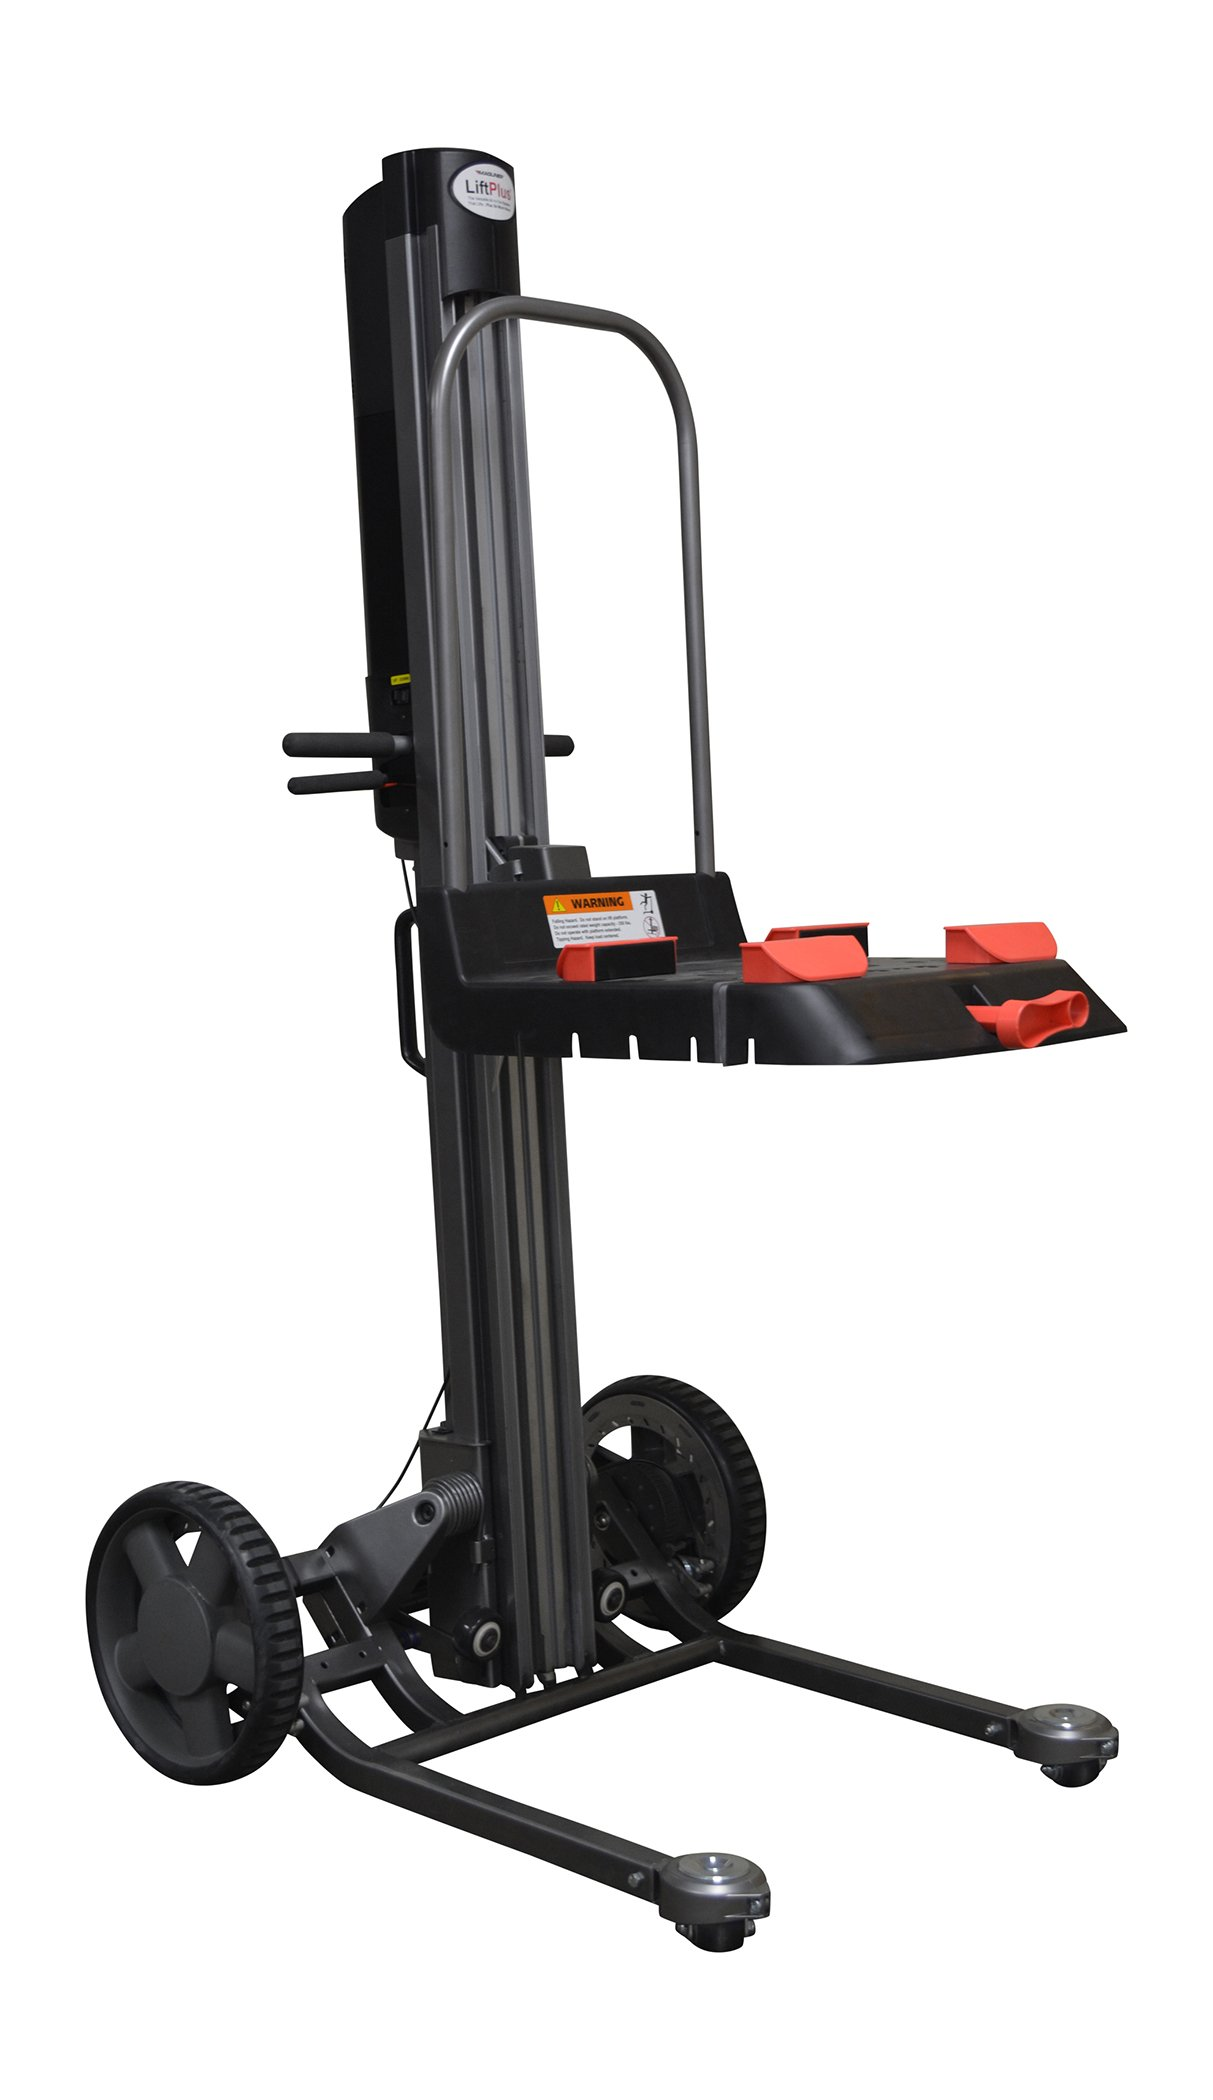 Magliner LPS4825NA1 Magline Liftplus with Work Bench Attachment, 48'' Lift Height, 350 lb. Capacity, 60'' Height, 33'' Width, 350 fl. oz. Lift Capacity